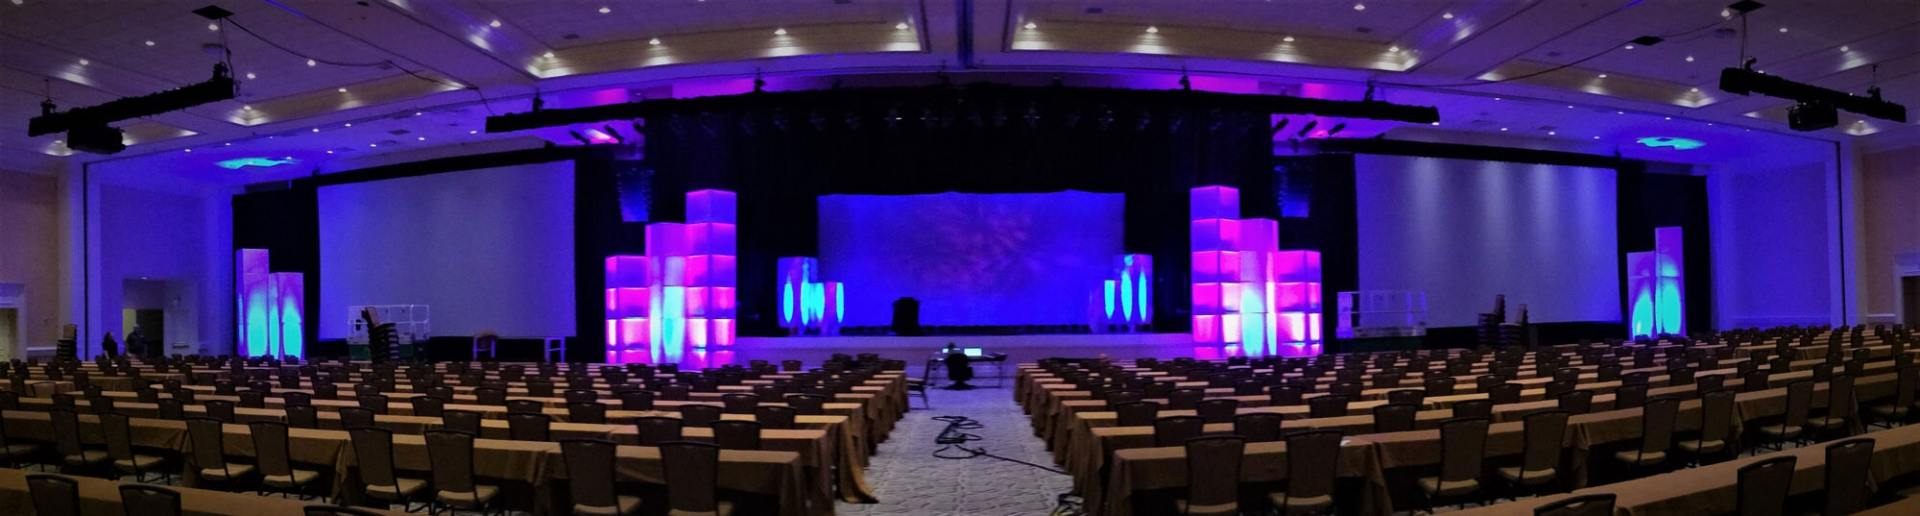 Sound Lighting And Staging Services Fort Myers Fl